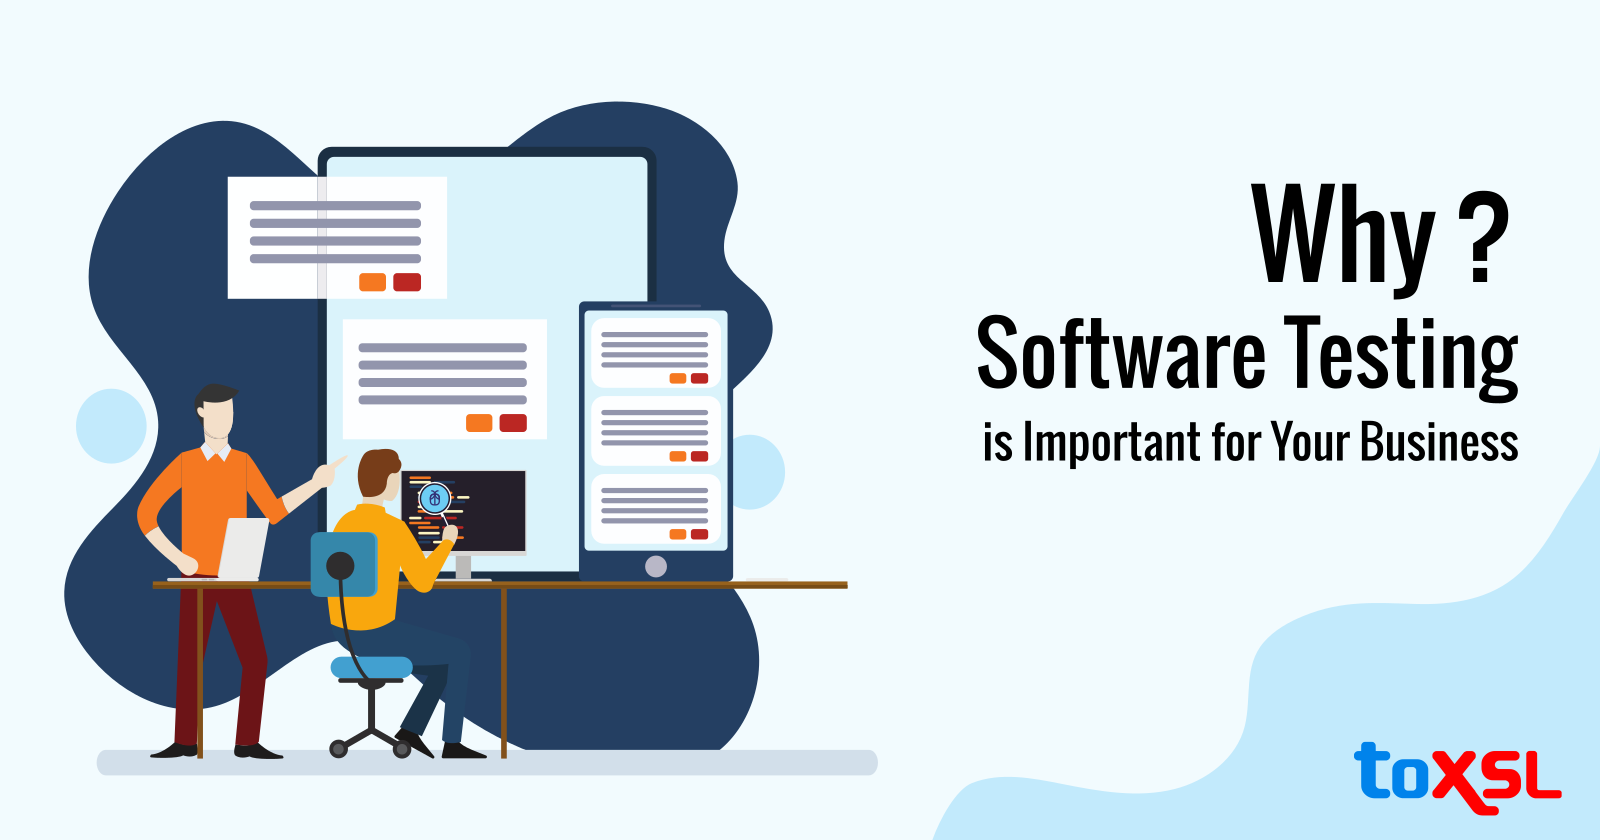 Why Software Testing is Important for Your Business